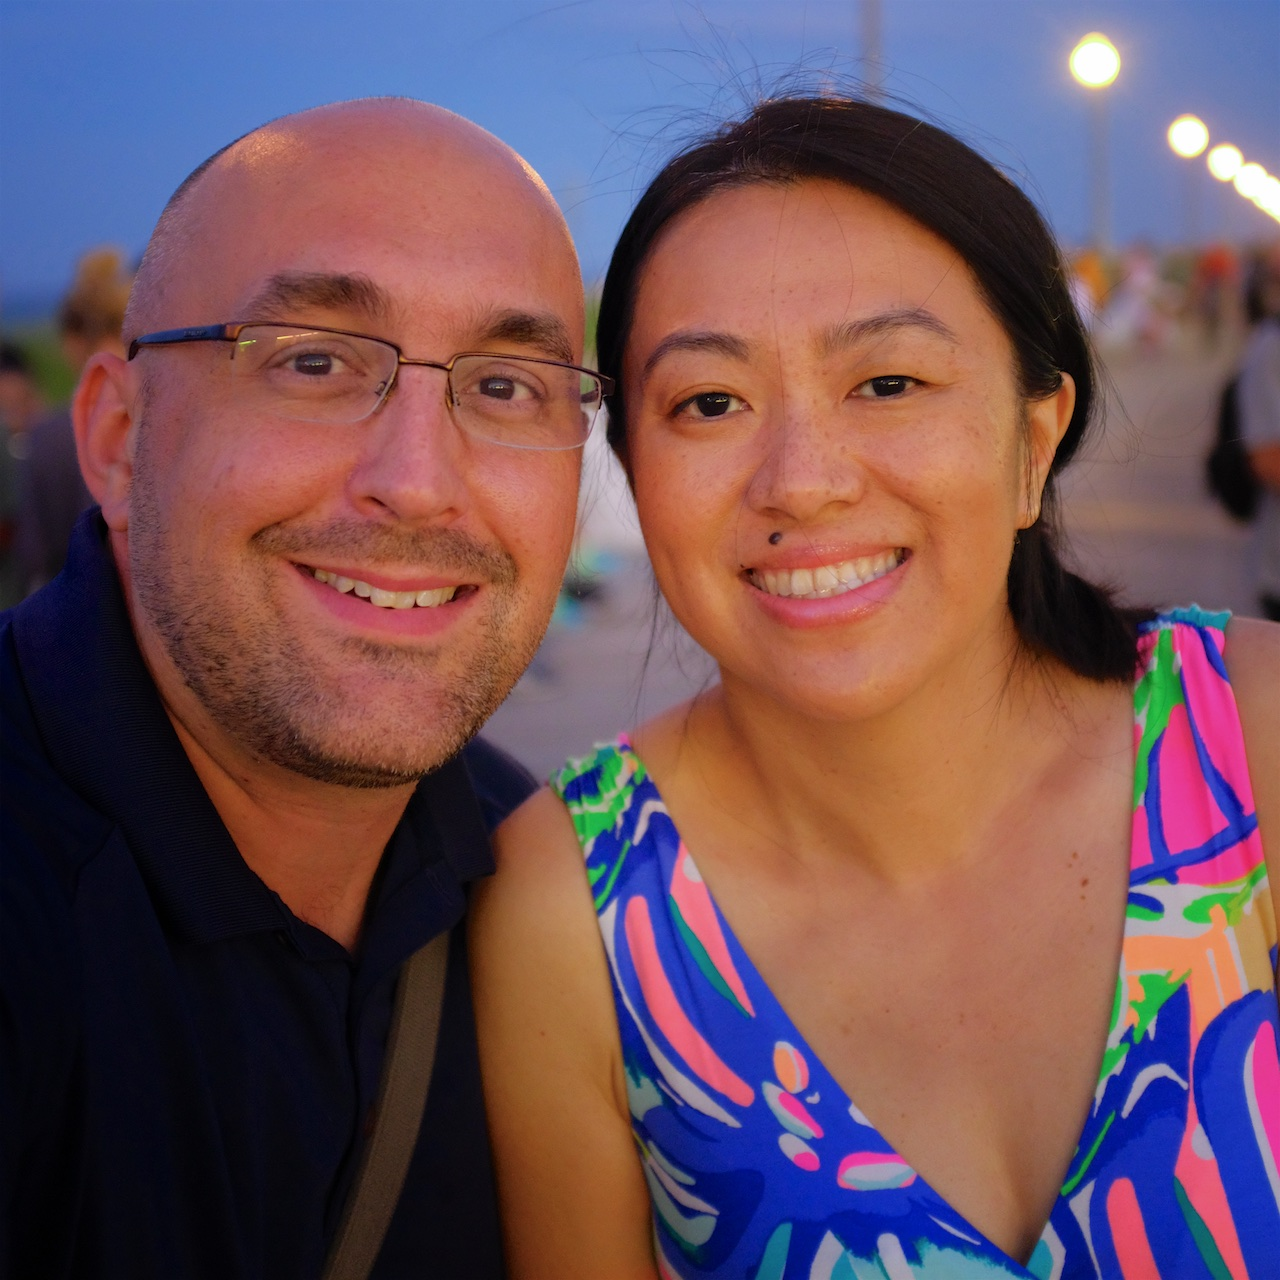 My wife has been through just as much in her own journey as I have in mine, but here we are smiling and hand in hand on the boardwalk at Rehoboth Beach back in June. <3